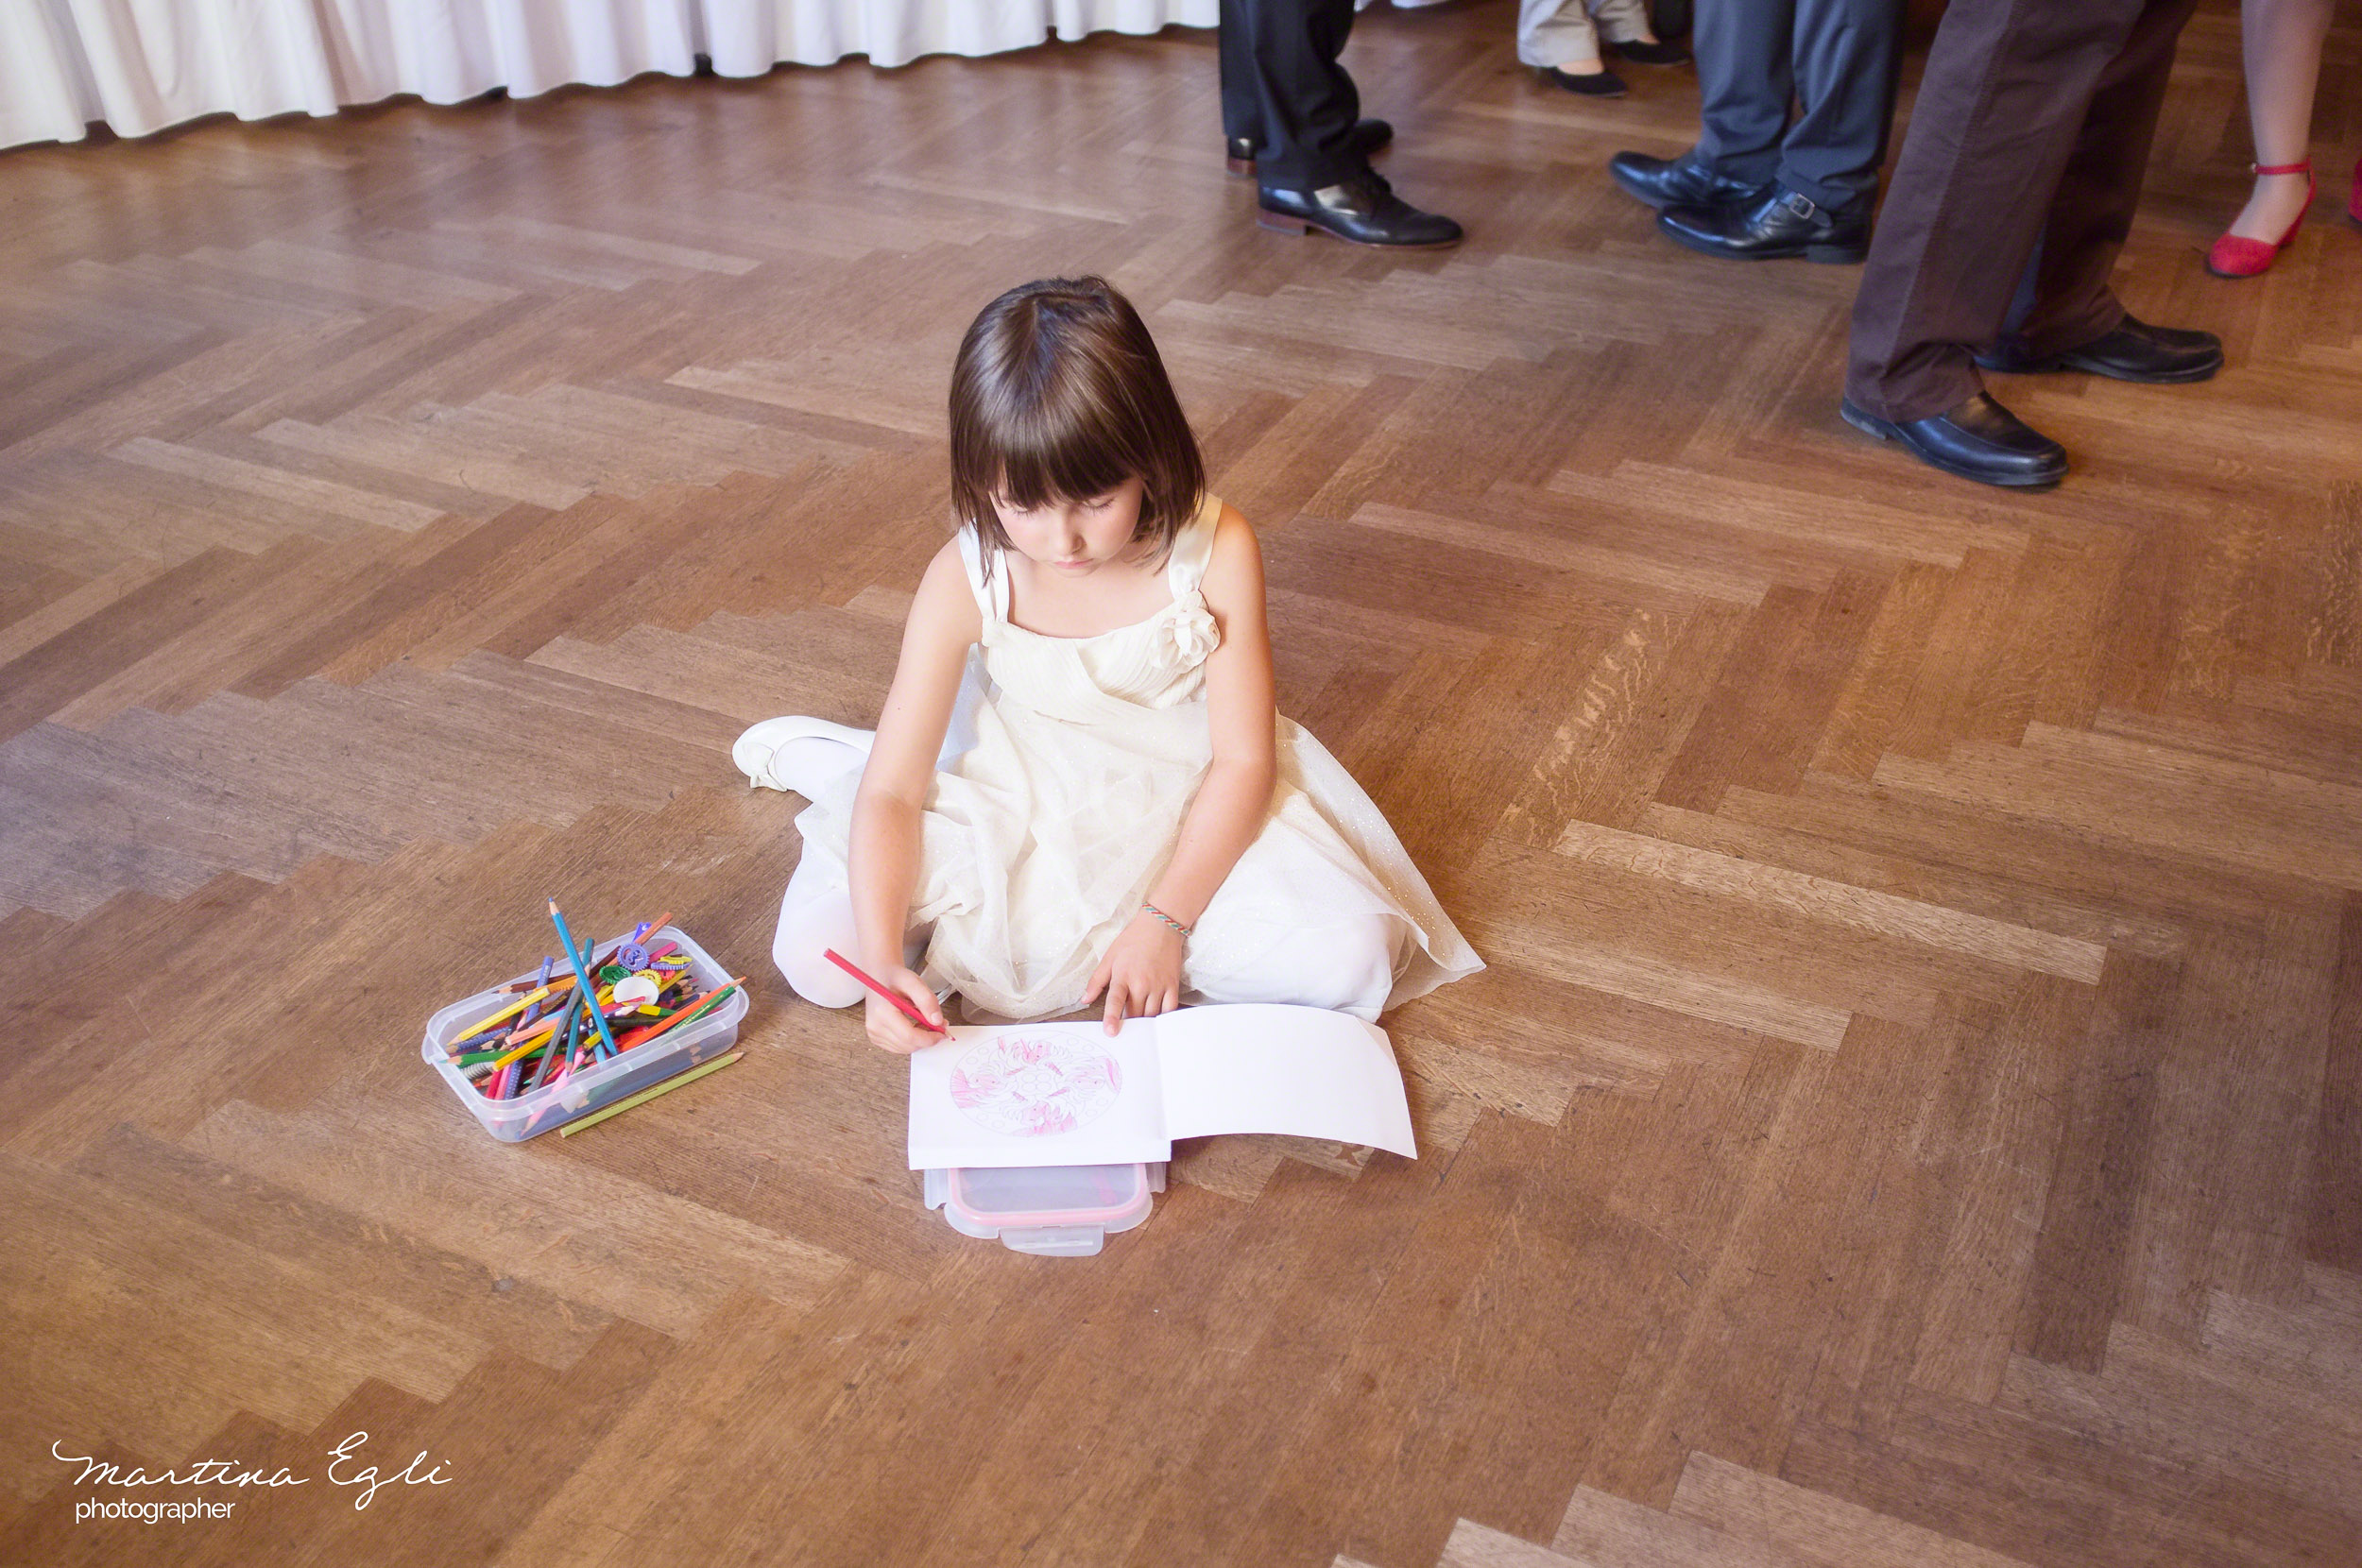 A young wedding guest amuses her self at the reception